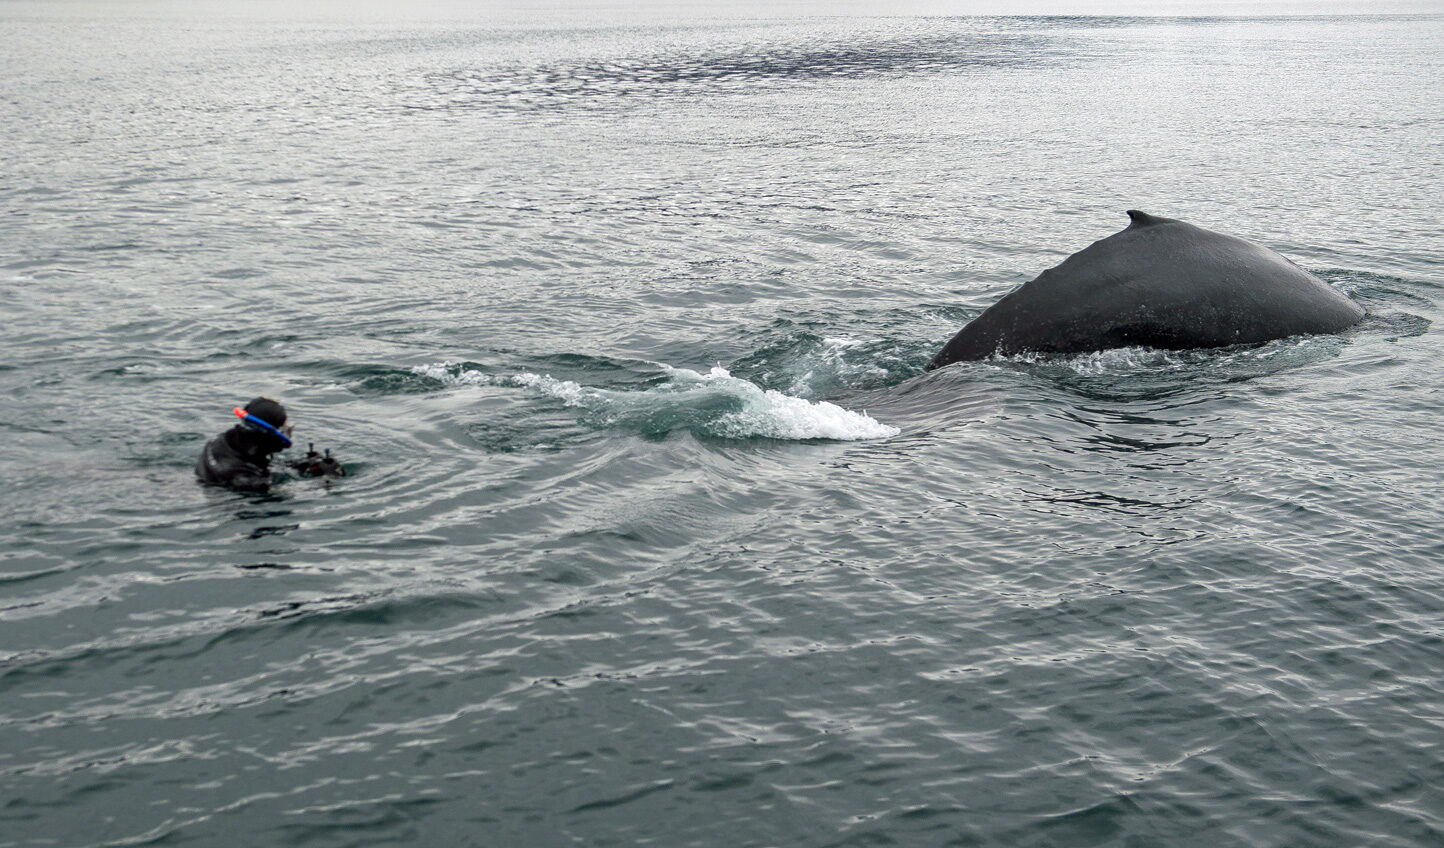 A person in the water with a snorkel about 6 feet from a whale